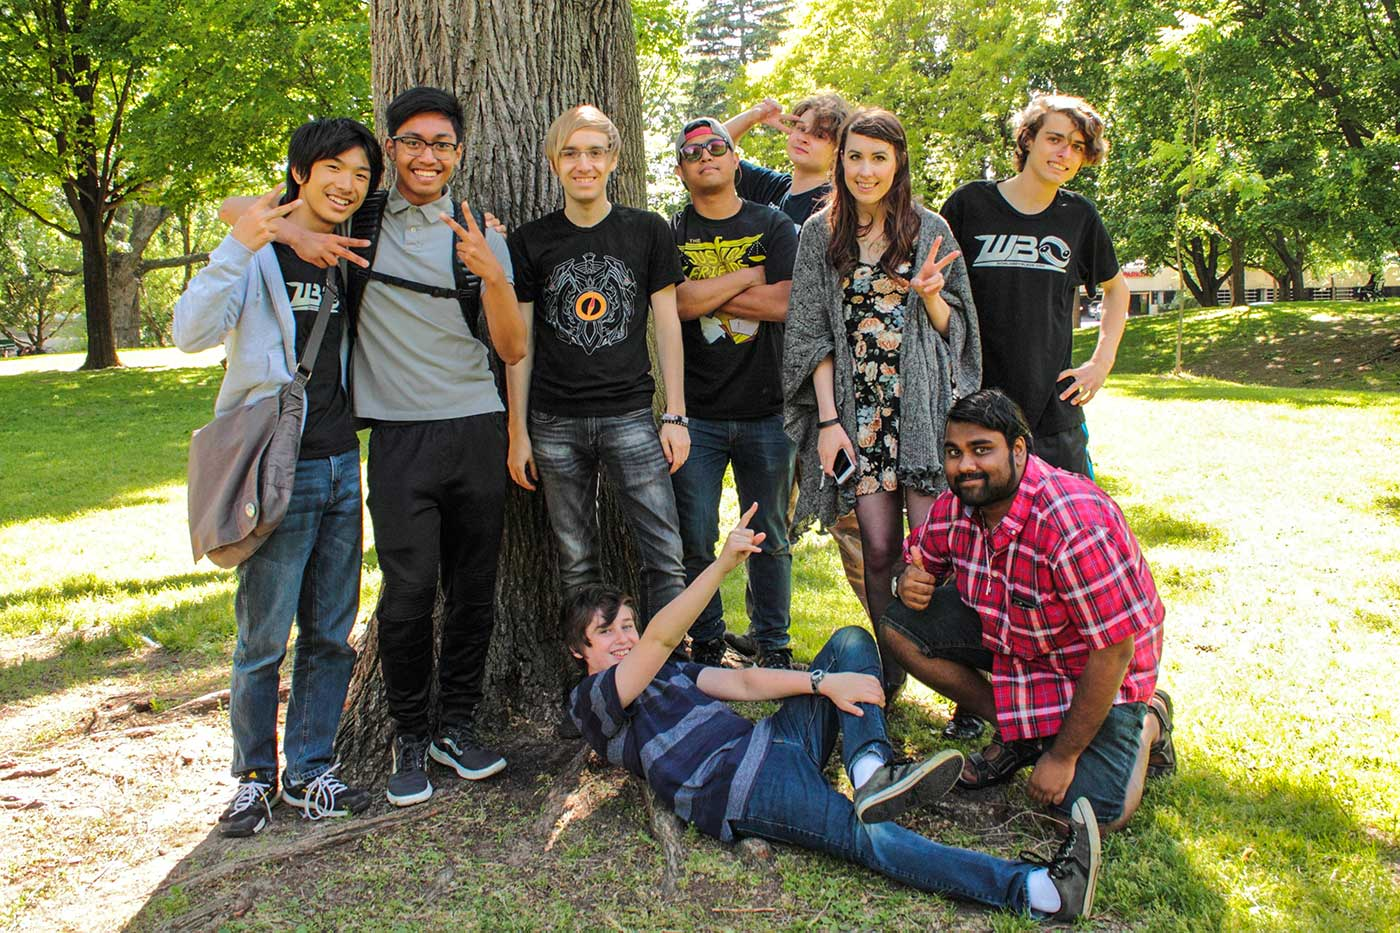 group photo of nine people in front of tree in park